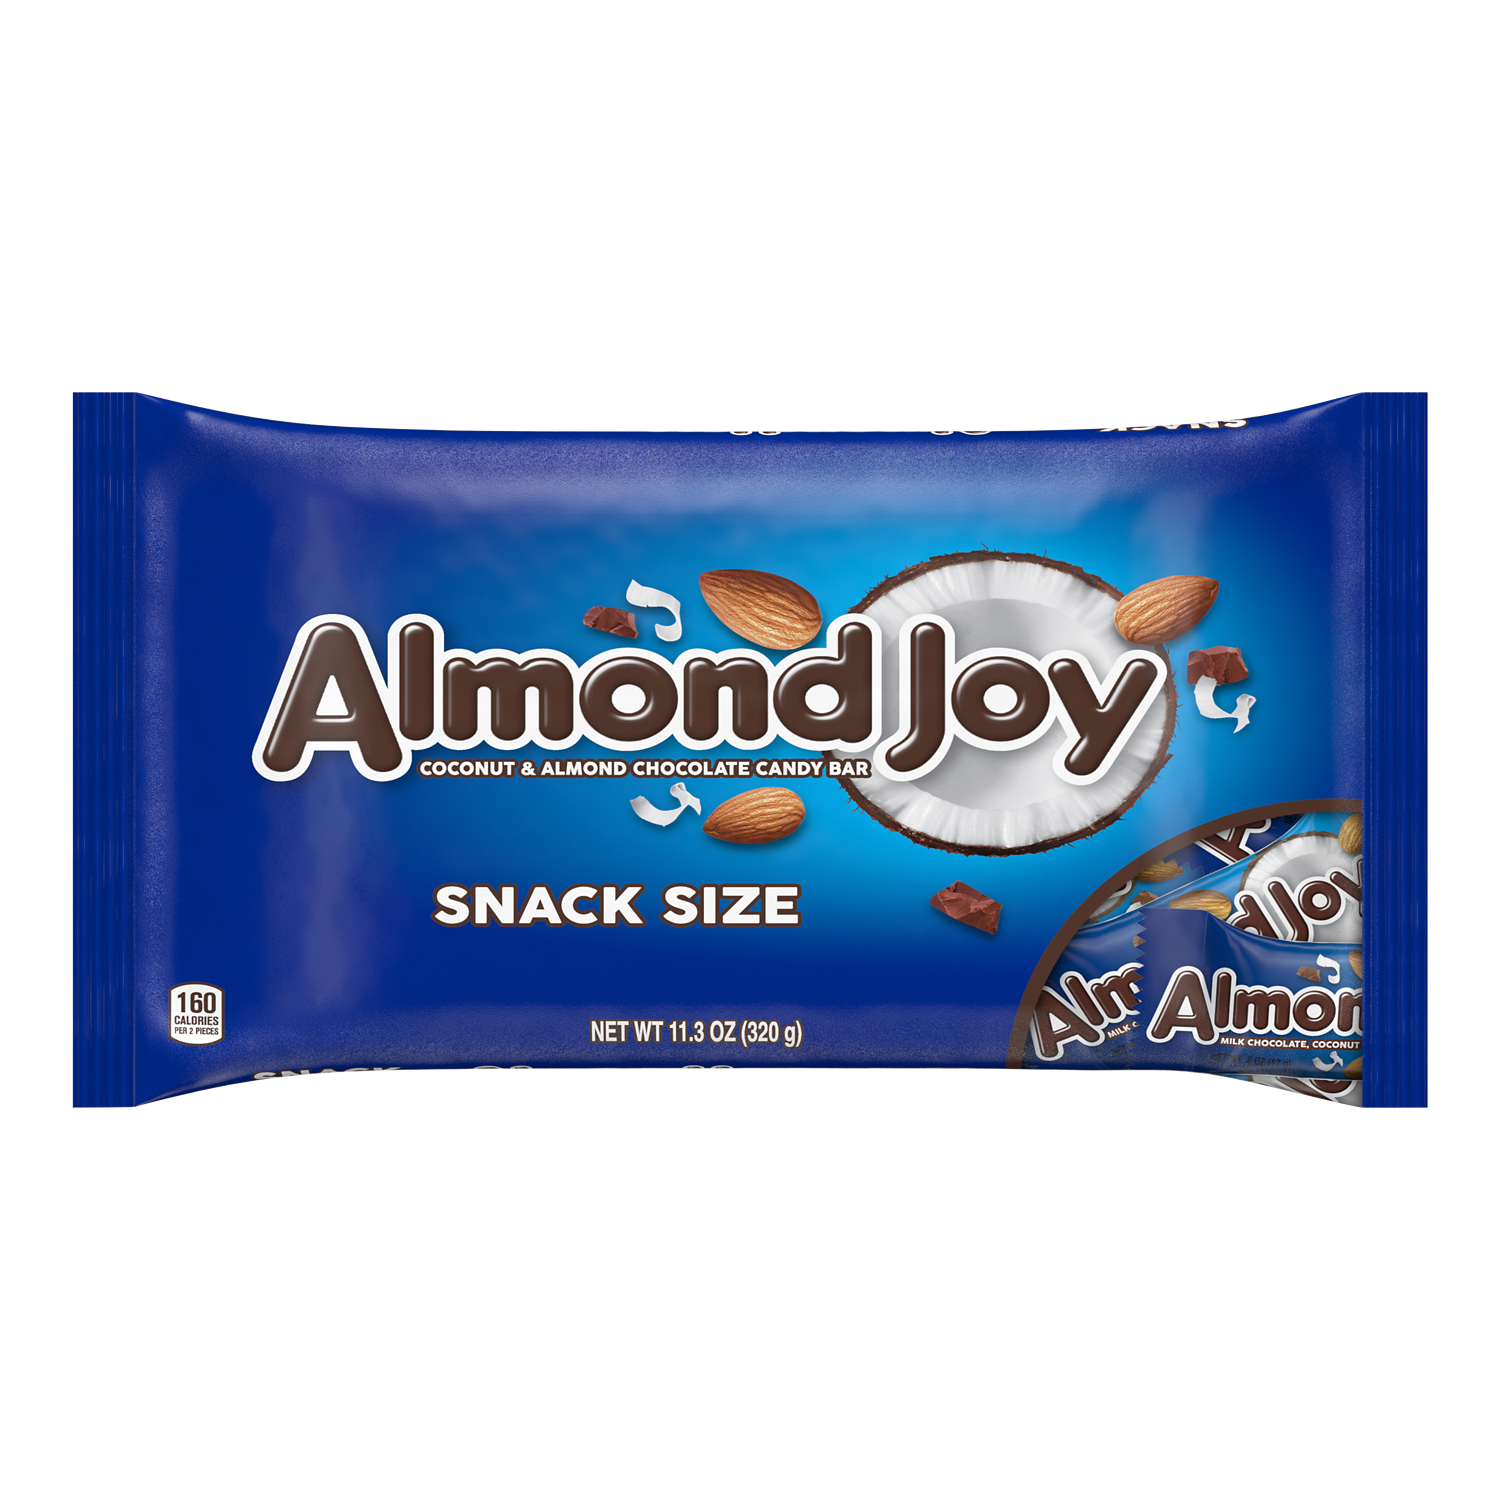 ALMOND JOY Coconut and Almond Chocolate Snack Size Candy Bars, 11.3 oz bag - Front of Package